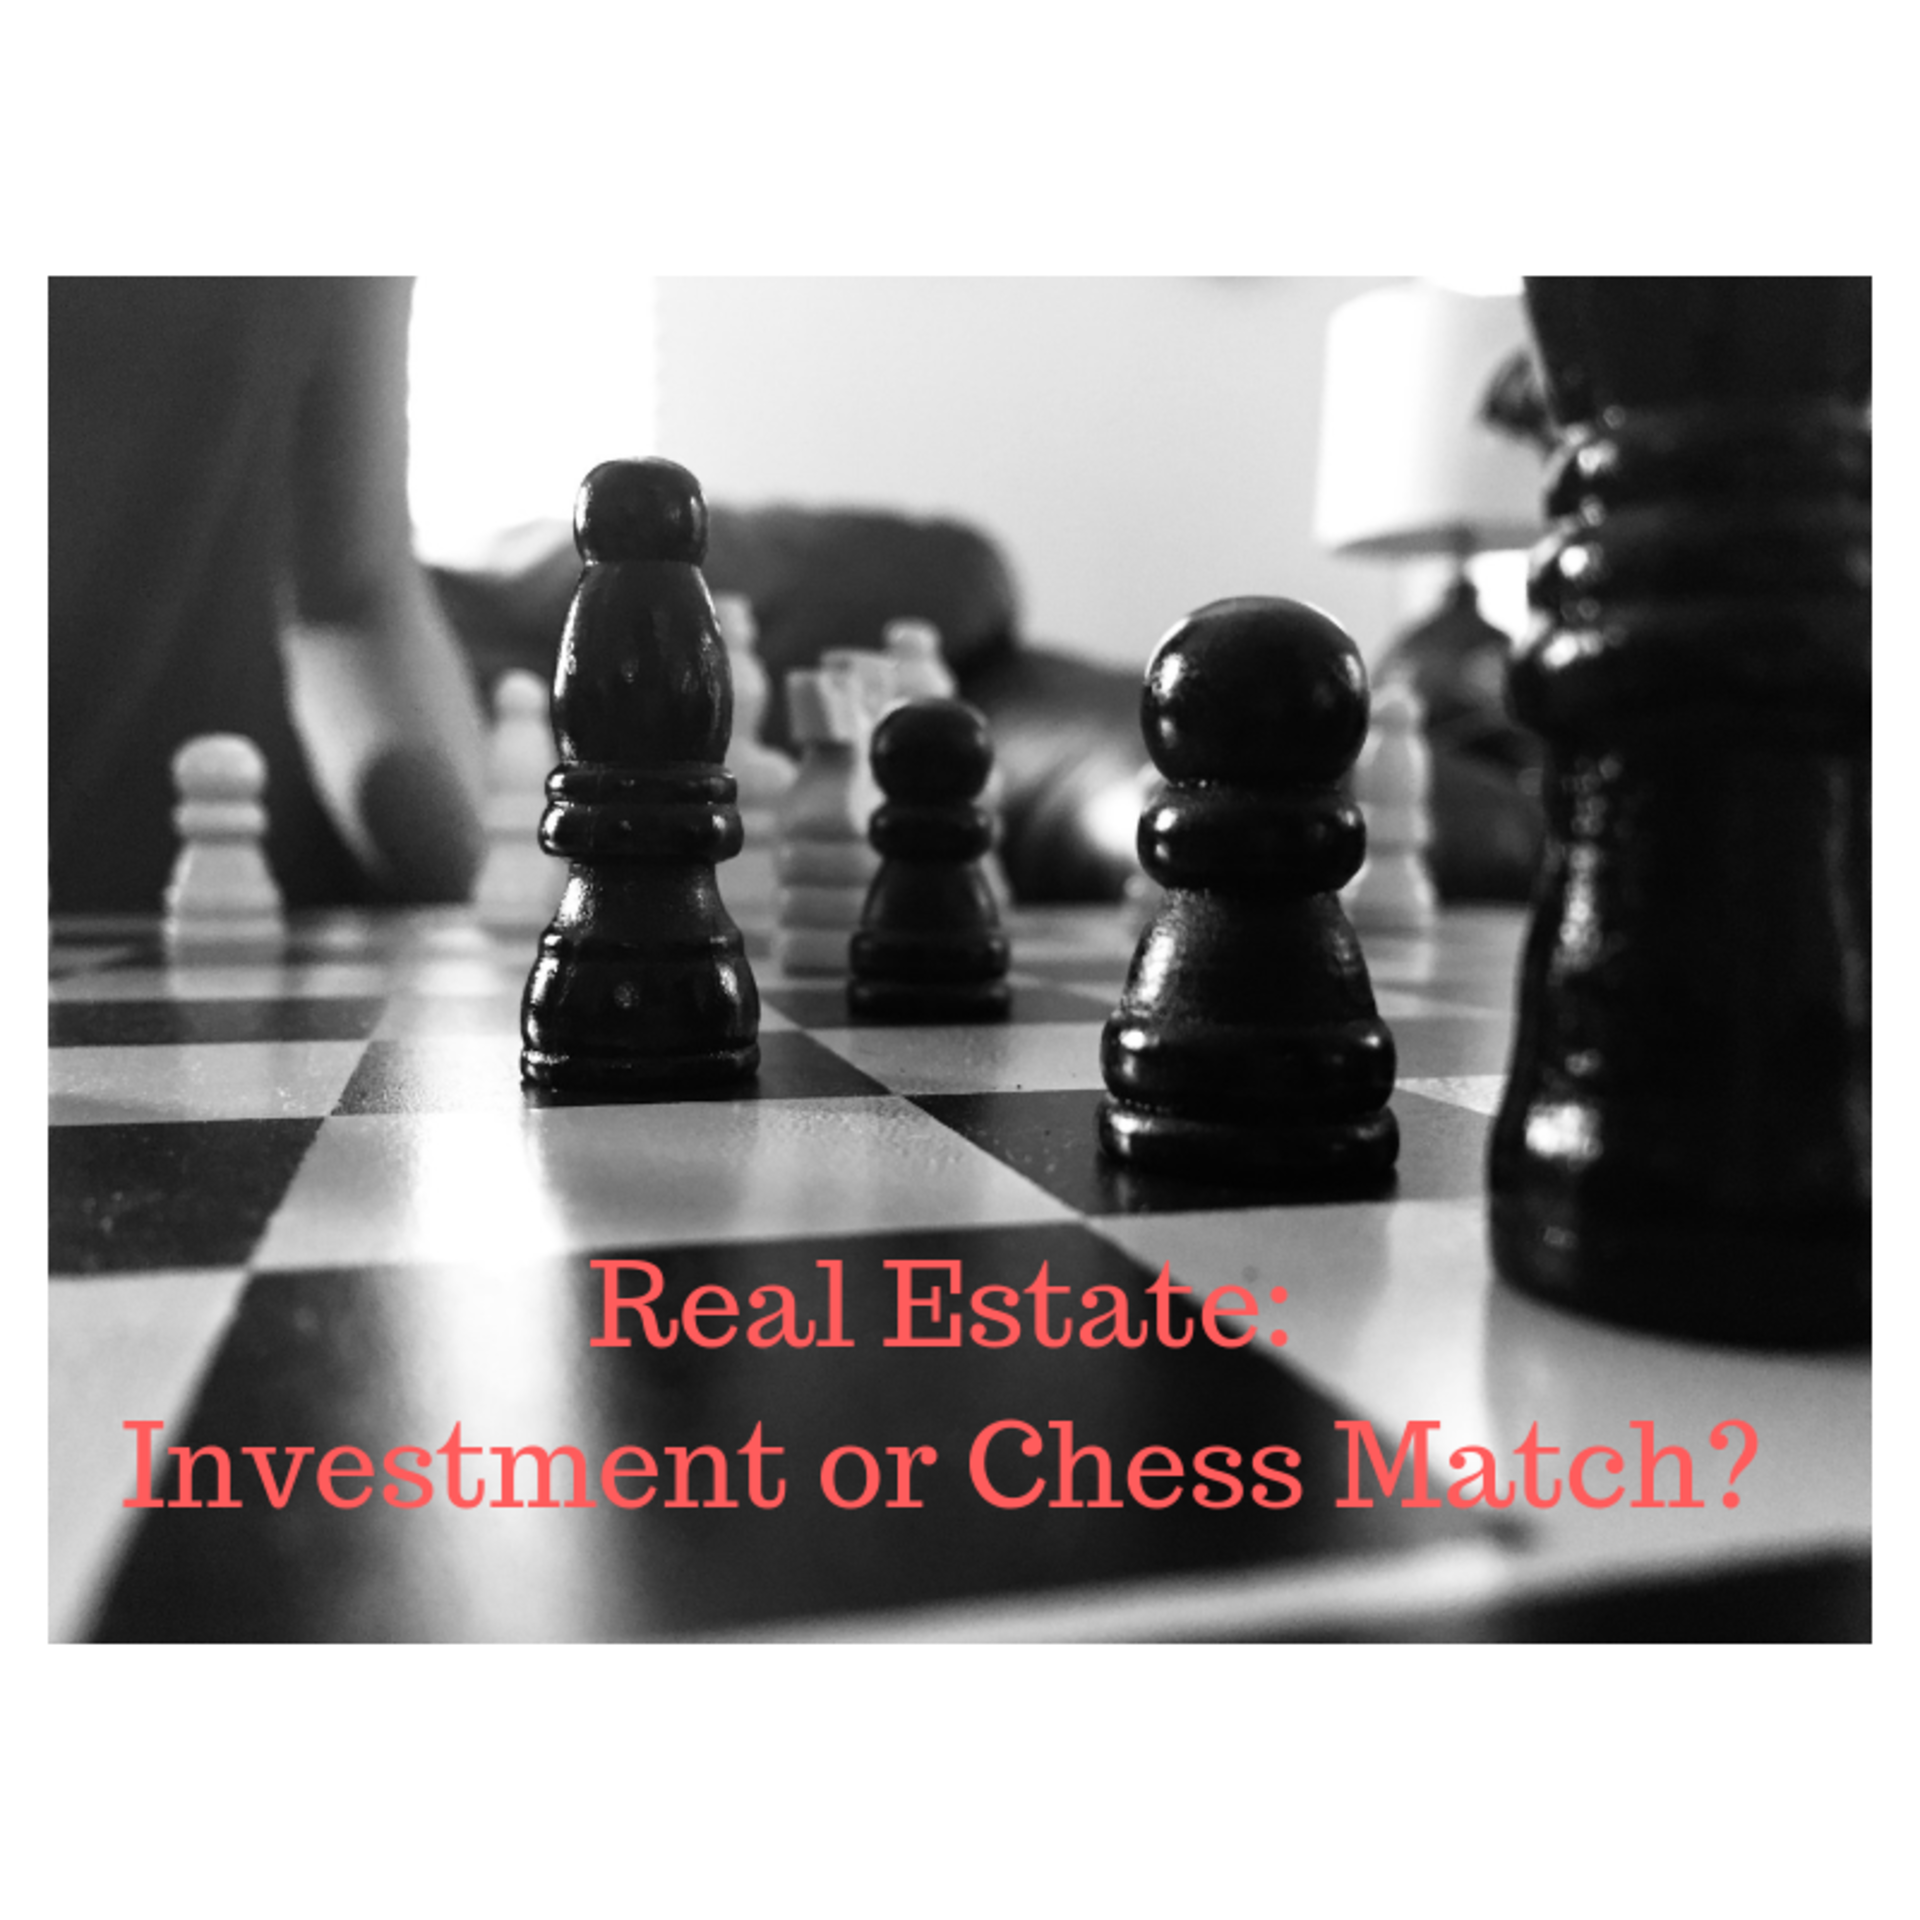 Real Estate-Investment or Chess Match?